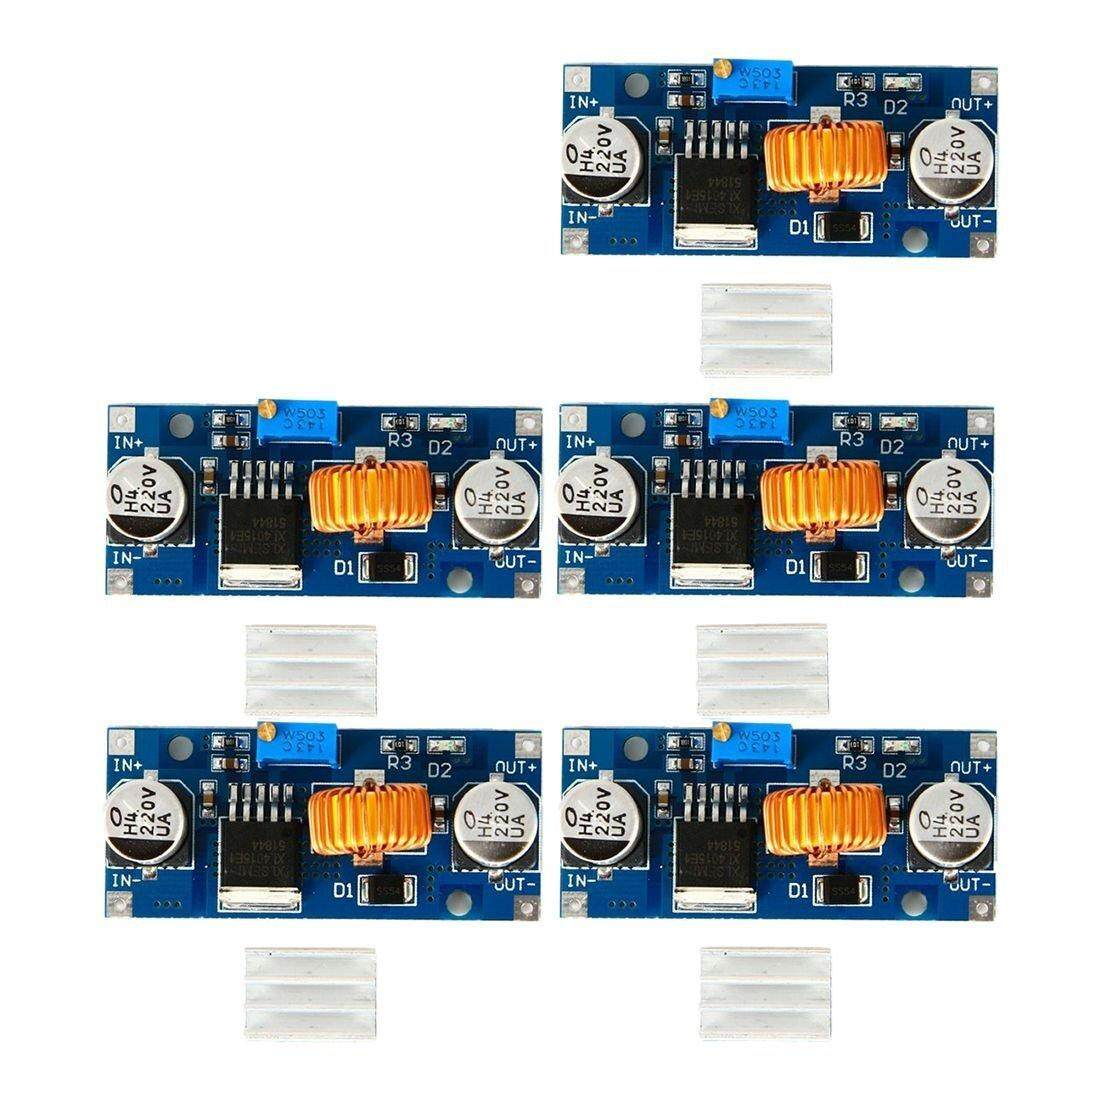 Features 5pcs Xl4005 Dsn5000 Beyond Lm2596 Dc Adjustable Step 5a Down 5pc Xl4015 Power Supply Module Led Charger